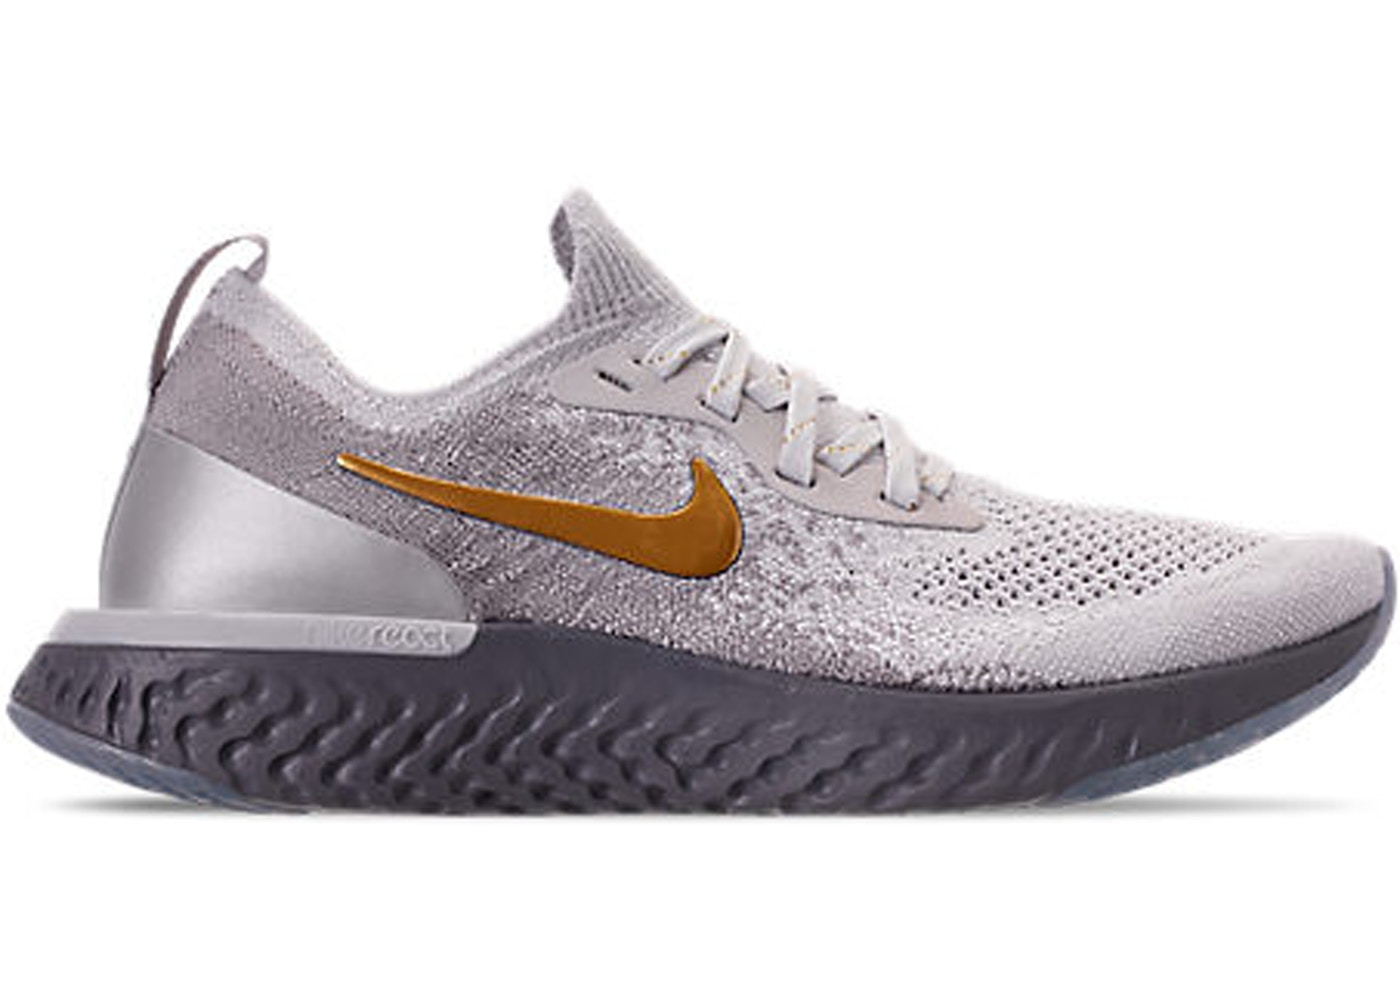 d51aa648698cc Nike Epic React Flyknit Vast Grey Metallic Gold (W) - AV3048-070